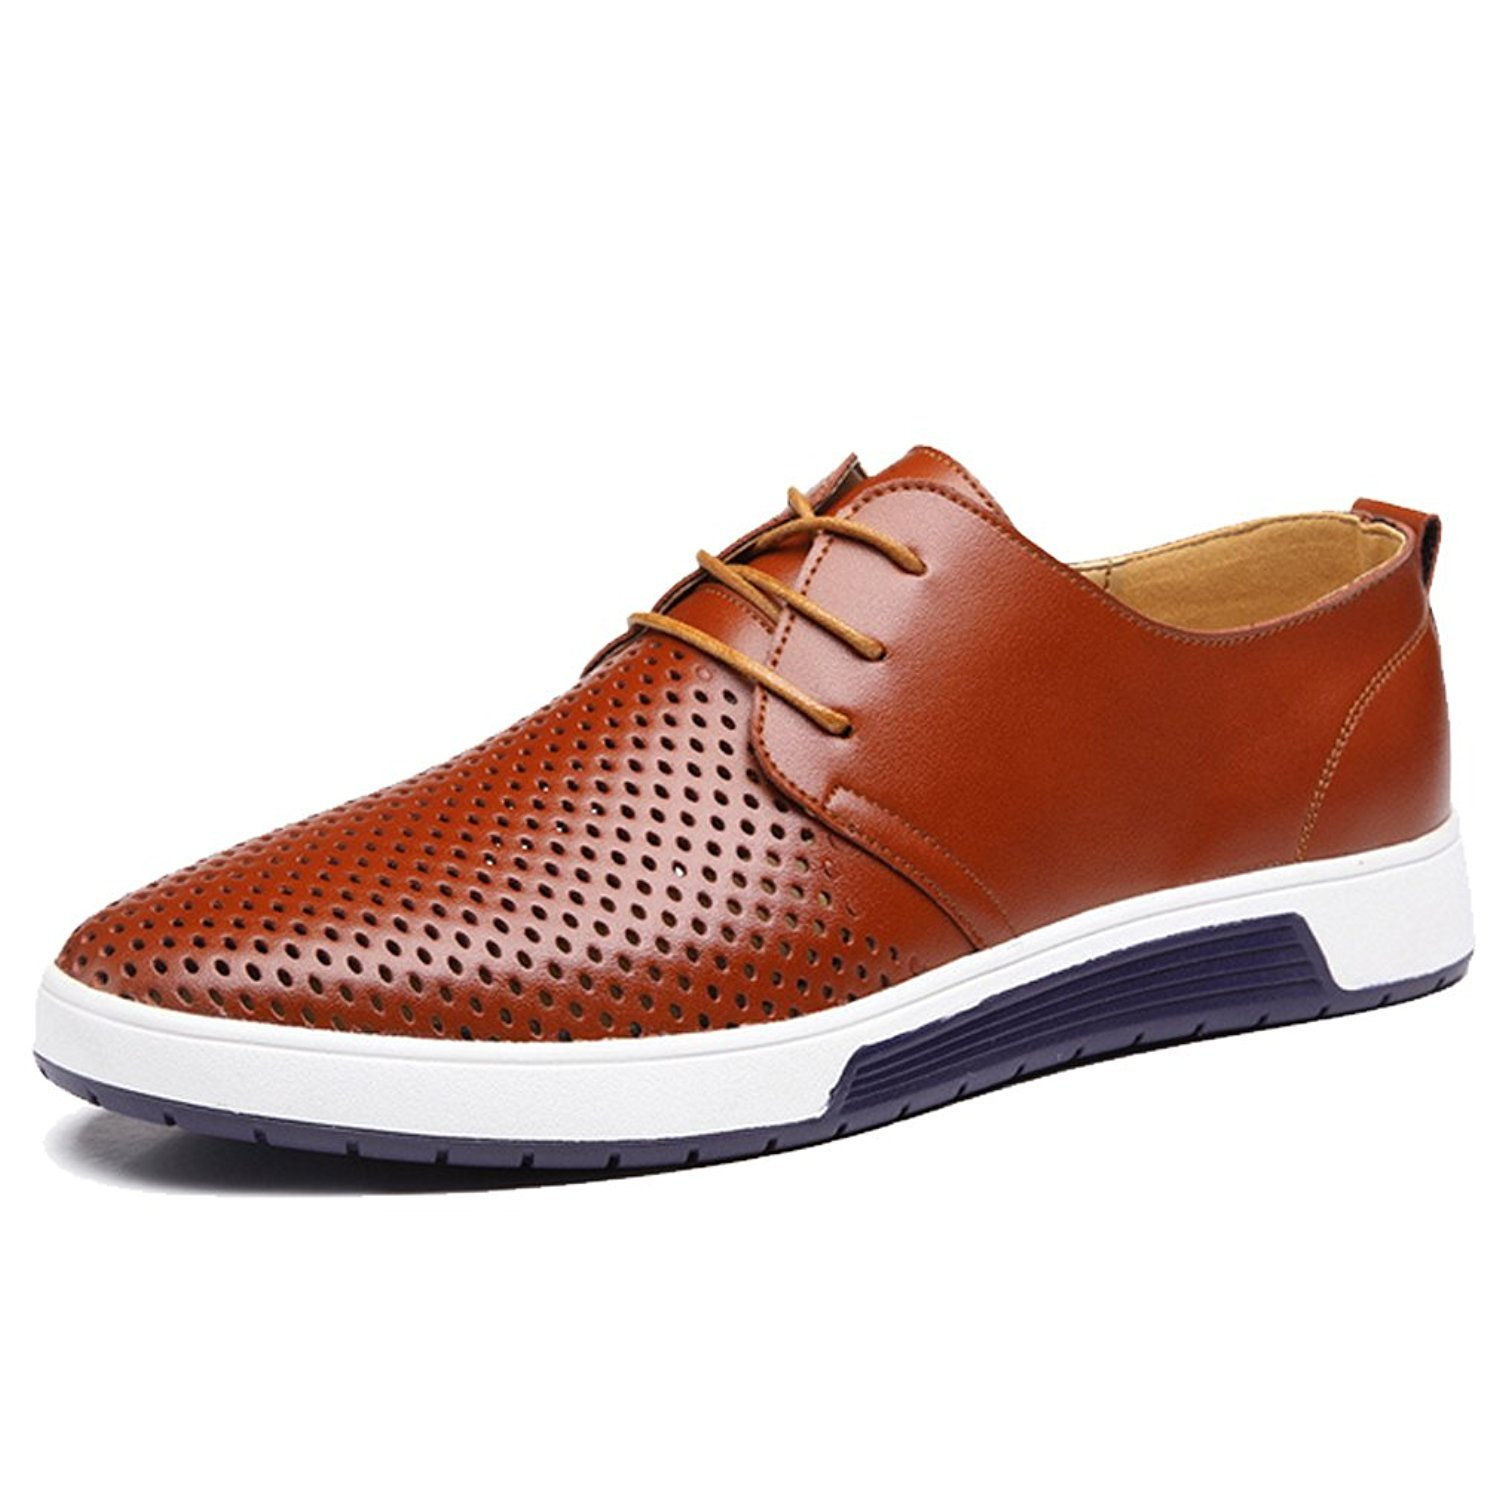 Zzhap Men's Casual Oxford Shoes Breathable Flat Fashion Sneakers Brown US 10.5 by Zzhap